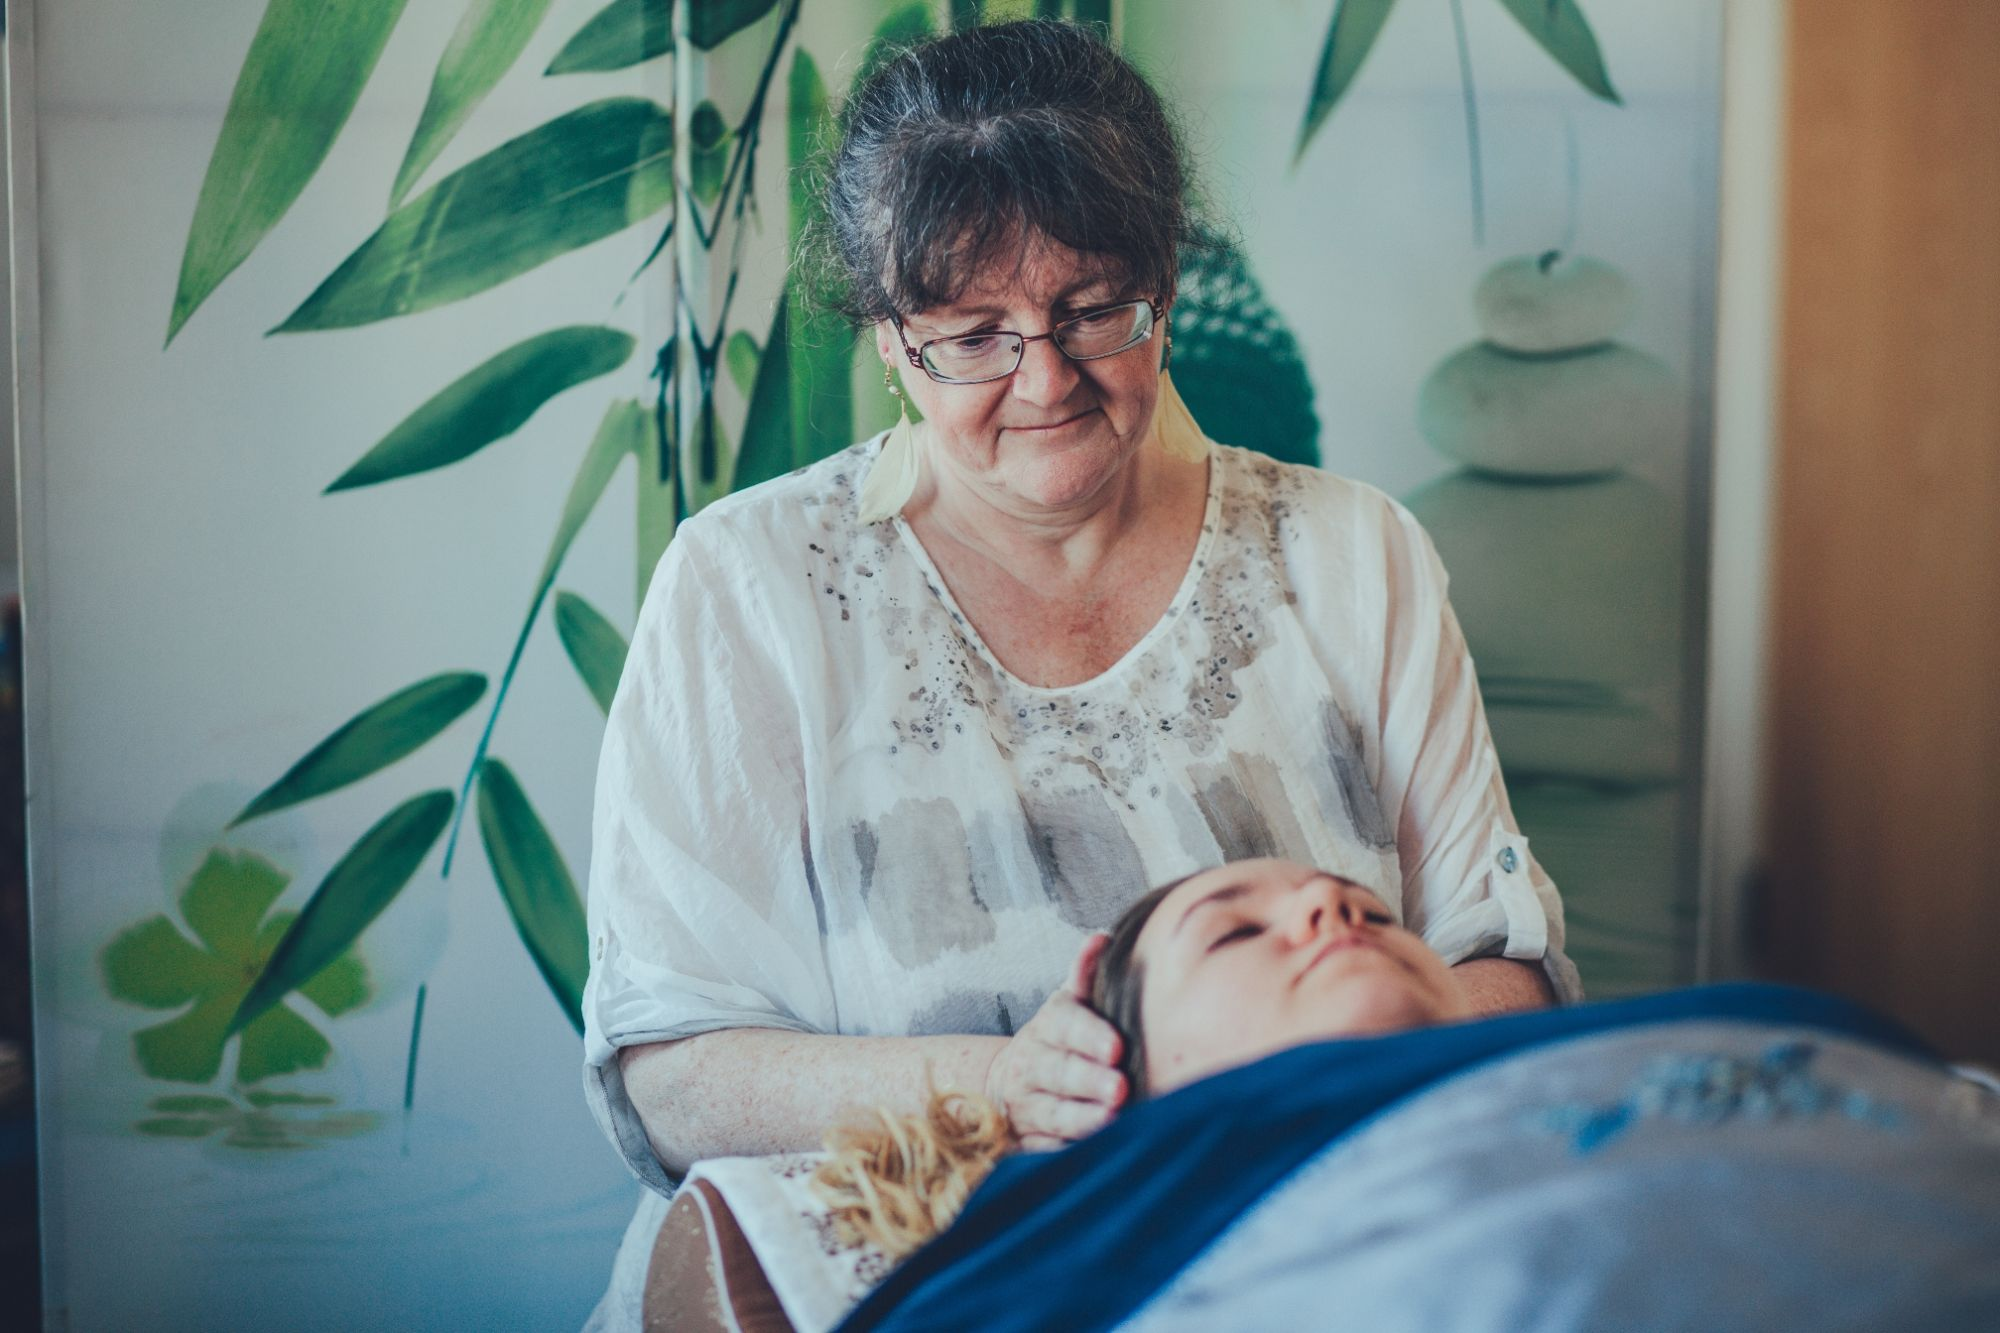 Helen giving a woman a Reiki treatement